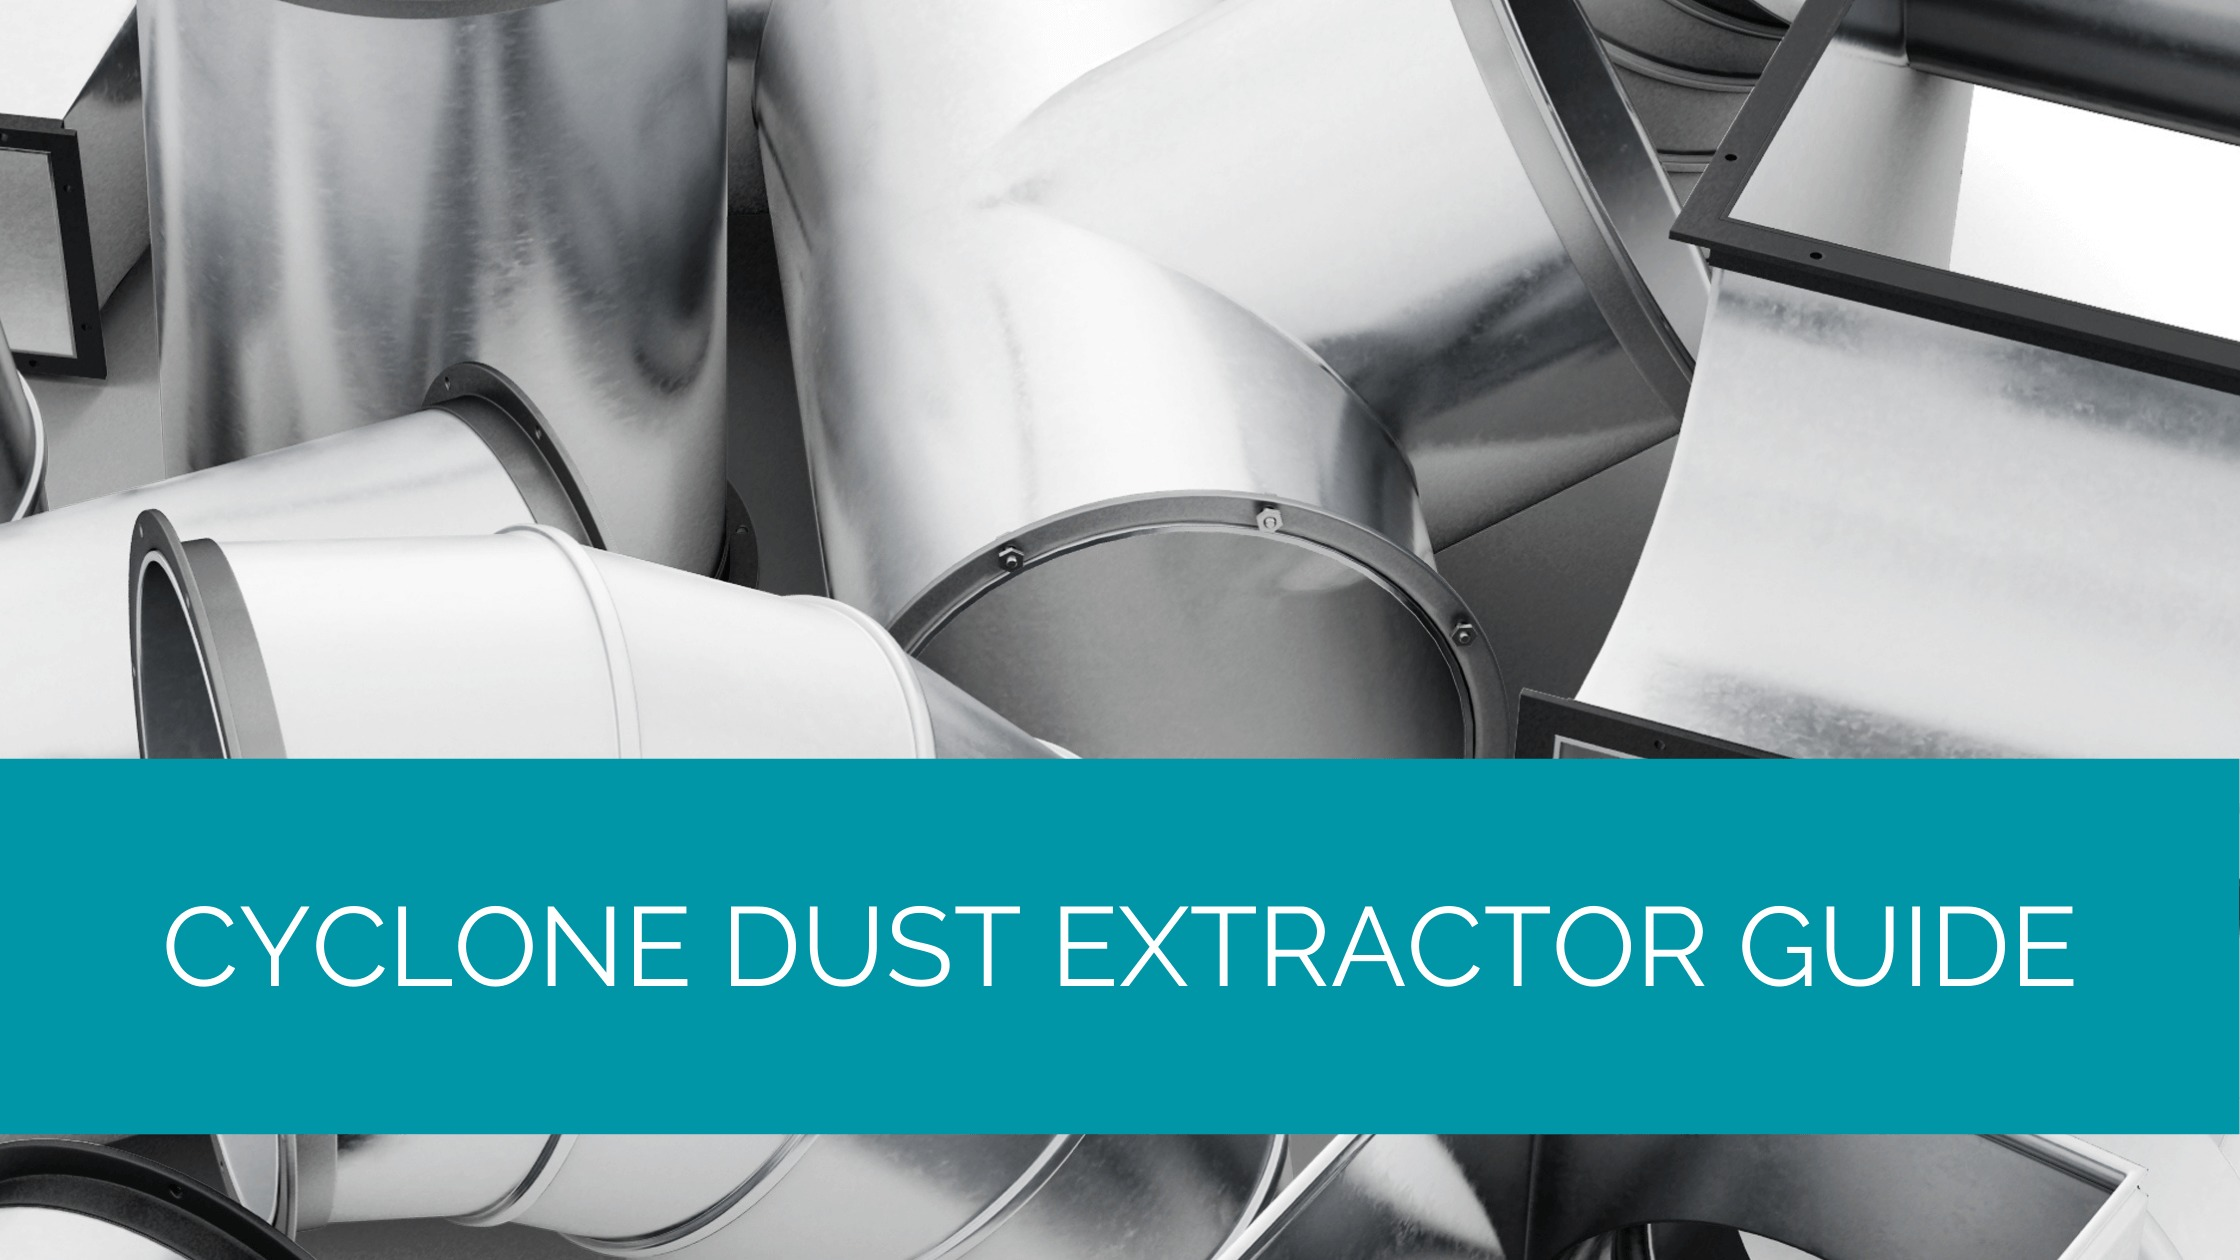 Cyclone Dust Extractor Guide